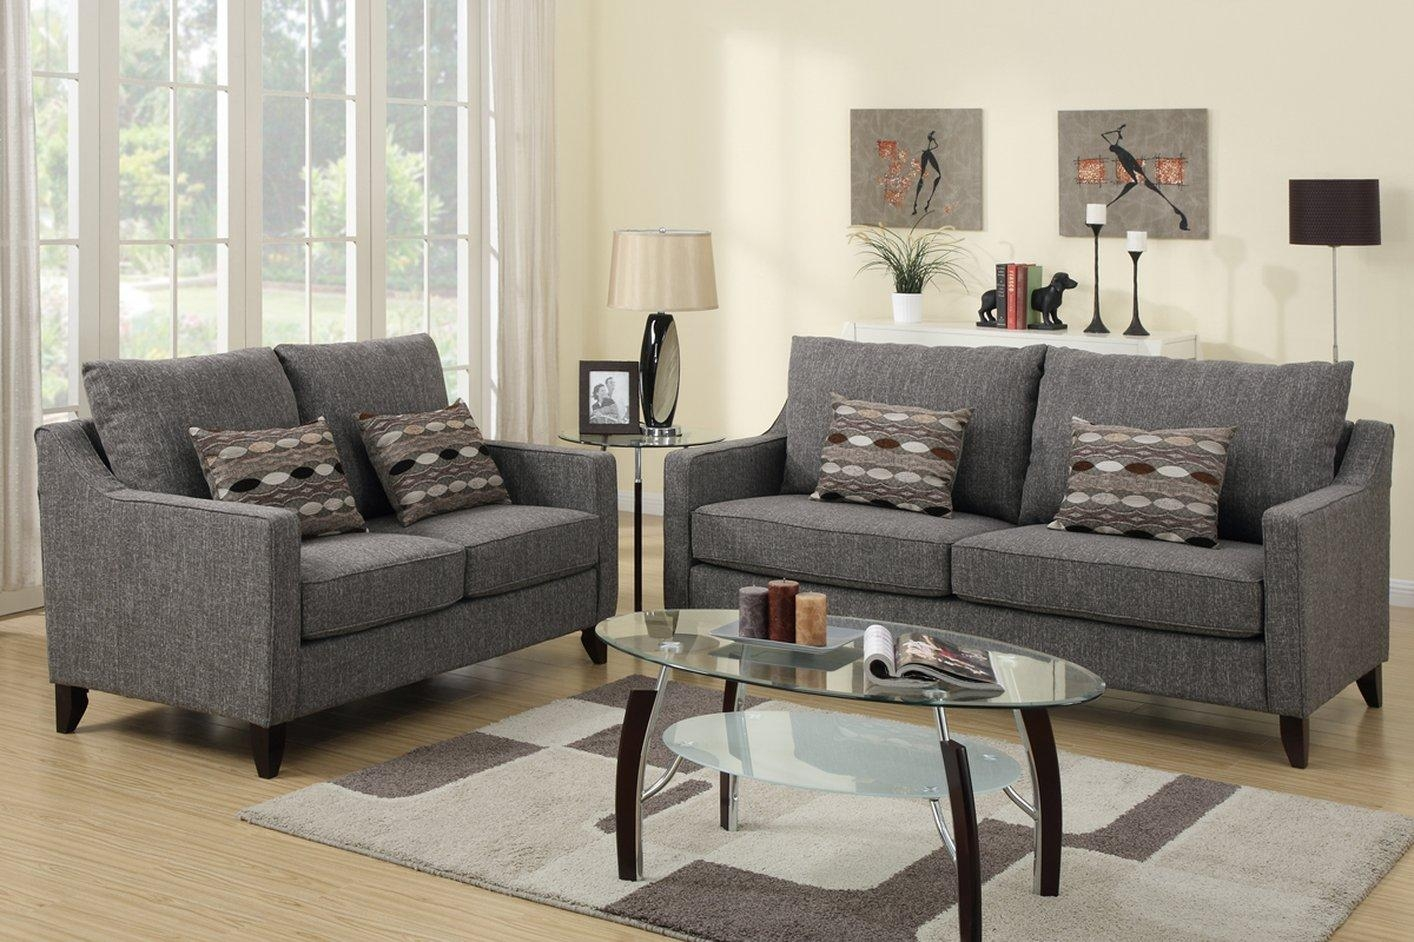 Avery Grey Fabric Sofa And Loveseat Set – Steal A Sofa Furniture Inside Sofa Loveseat And Chairs (View 7 of 20)